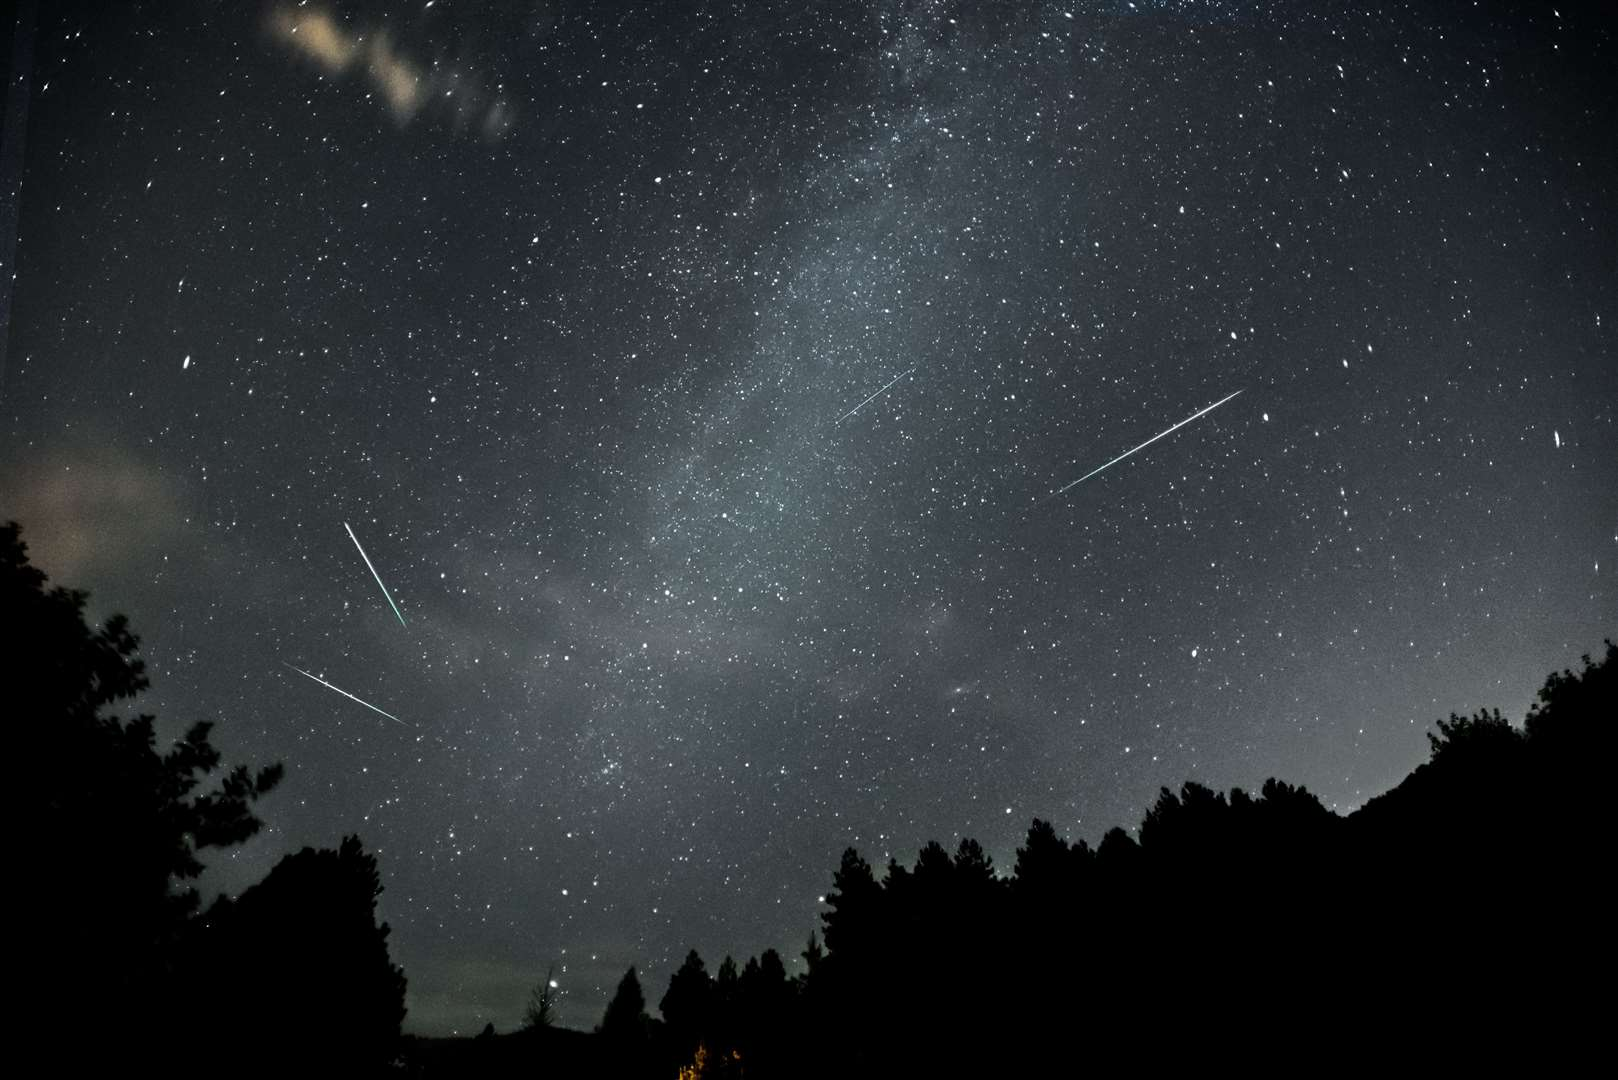 The Perseid meteor shower began in late July and is expected to peak around August 12